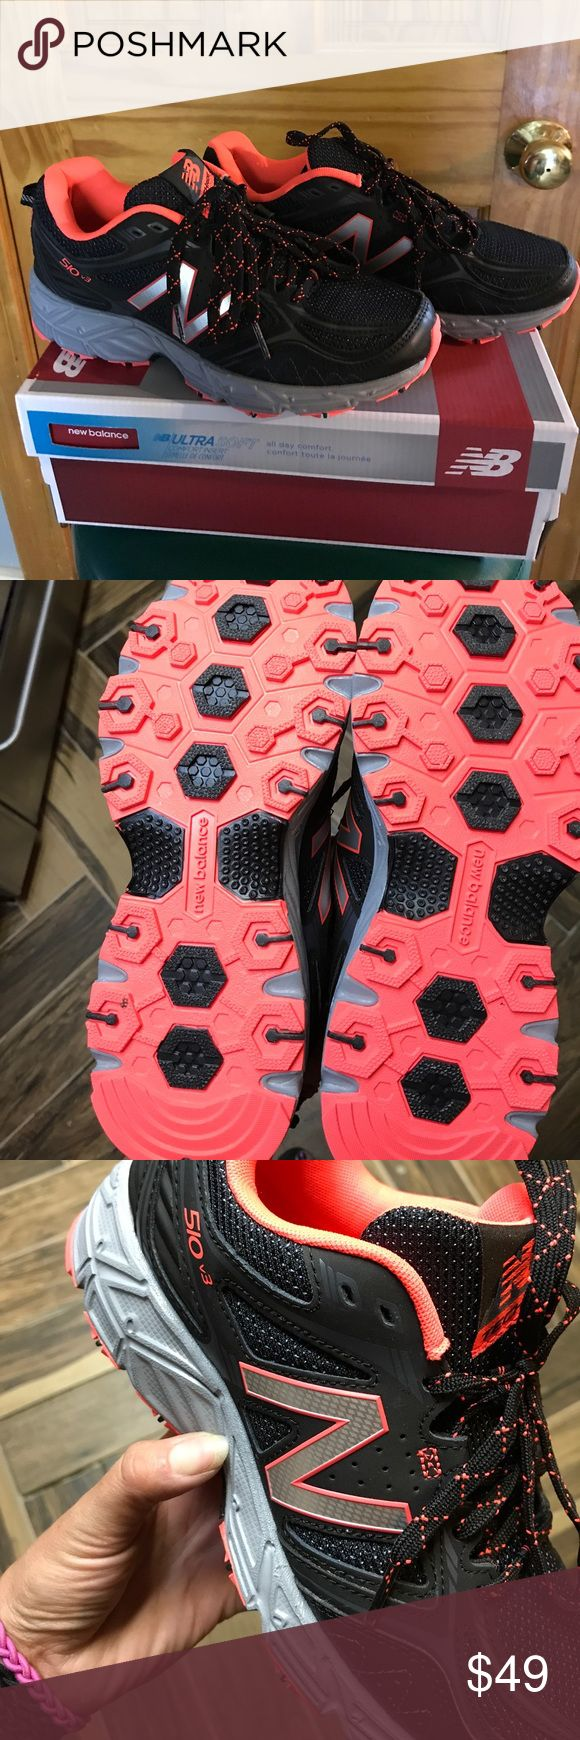 """New balance all terrain sneaker New balance 510 all terrain running shoe size 8 medium width black on black with bright peach pink inside, silver """"N"""" with peach pink outline grey bottom with black and peach pink soles, black and peach pink laces. Bought wore once indoors and one foot just wasn't comfortable. Pretty much in brand new condition. New Balance Shoes Athletic Shoes"""